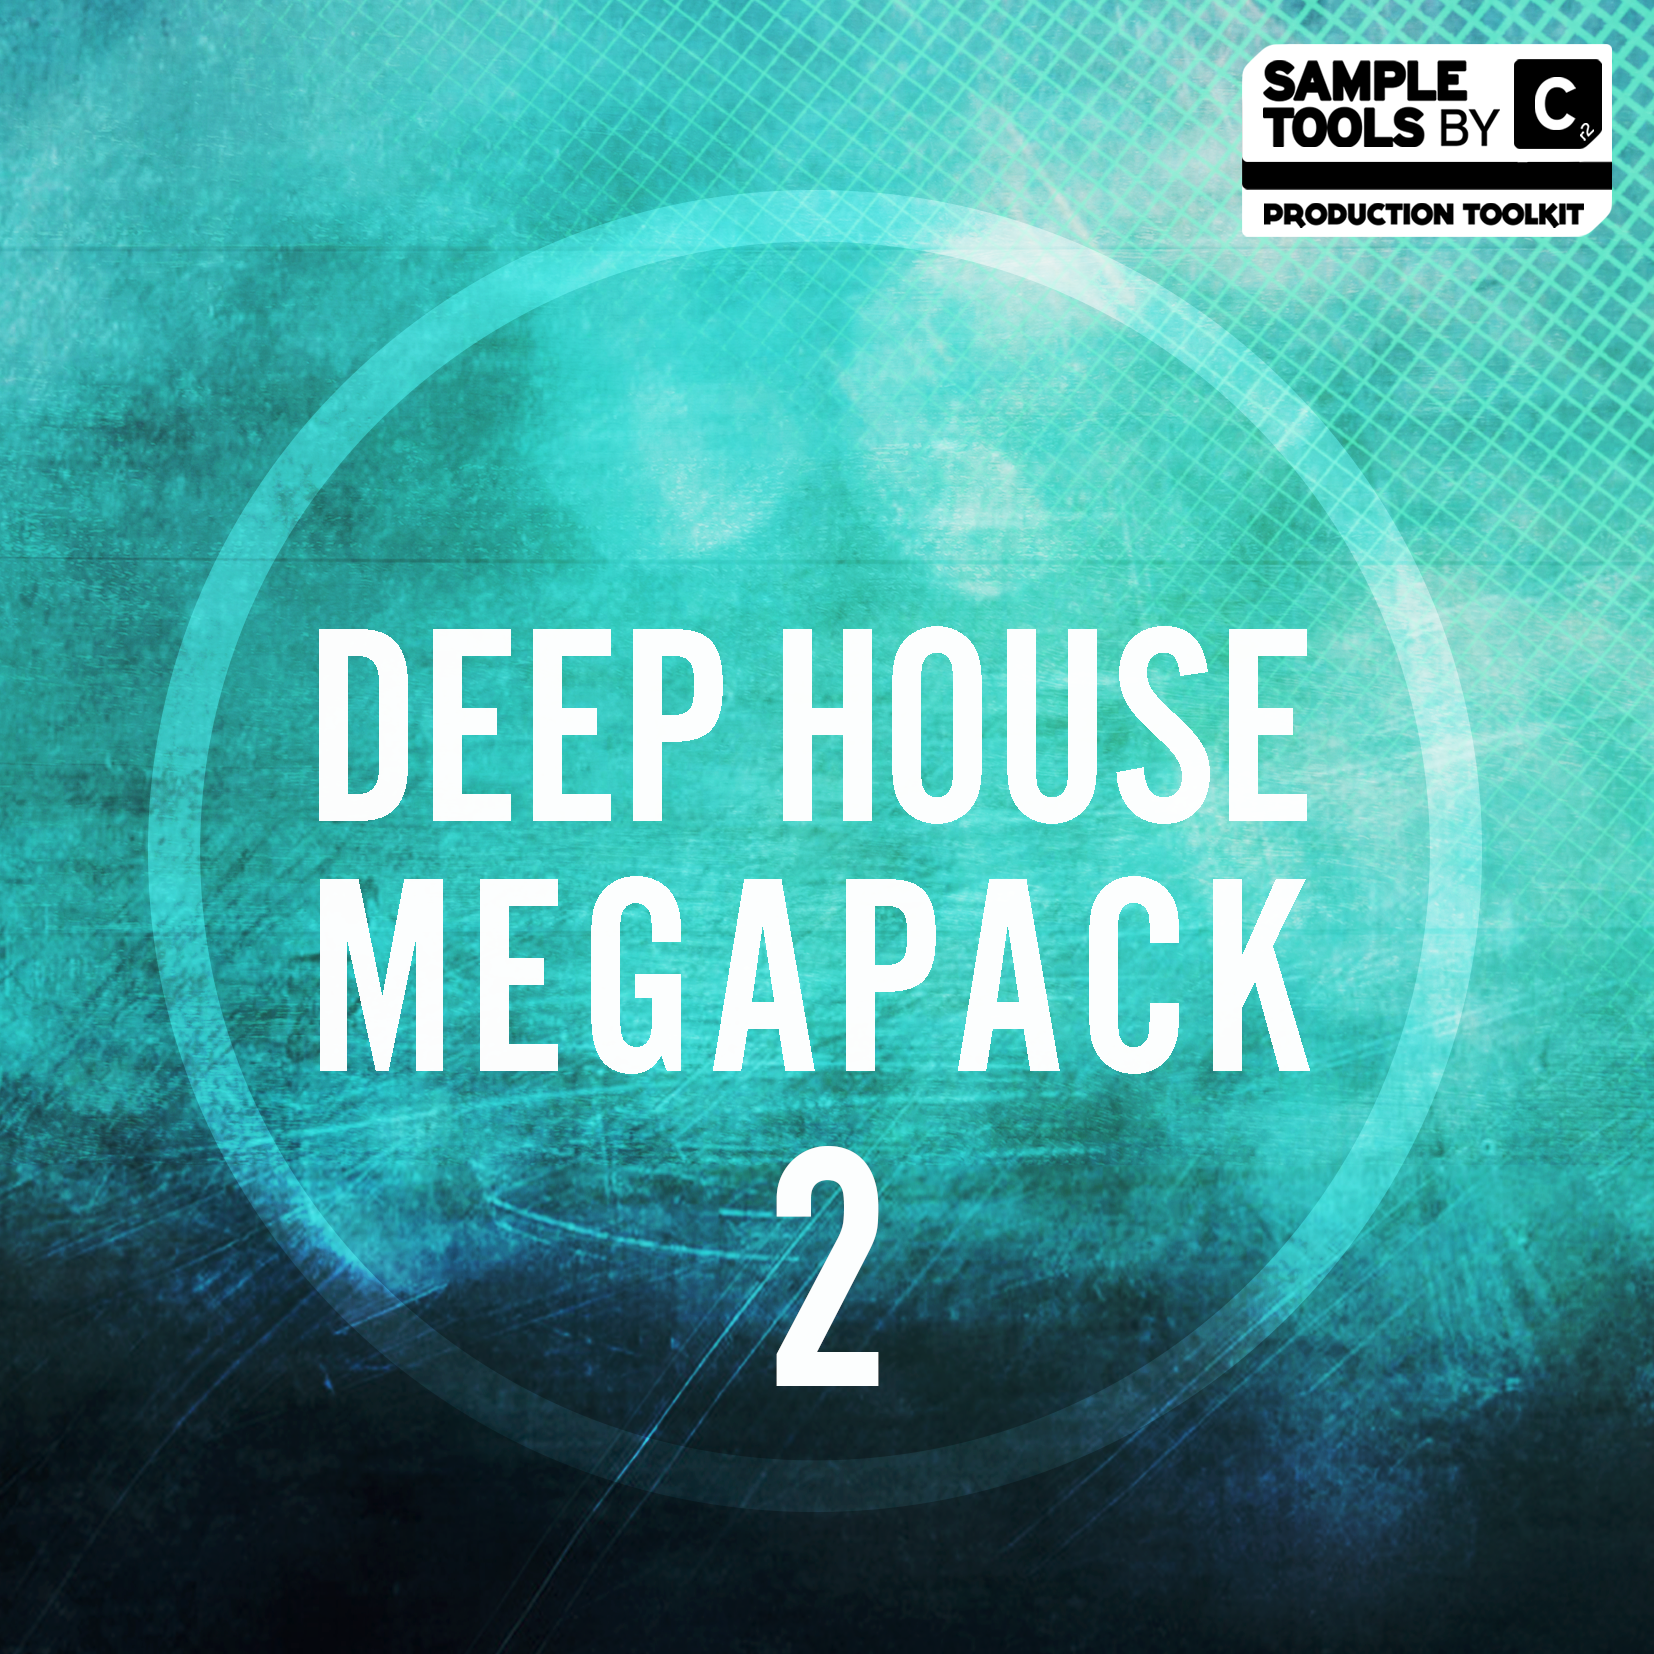 Deep House, Megapack, Sample tools by Cr2, Production Kit